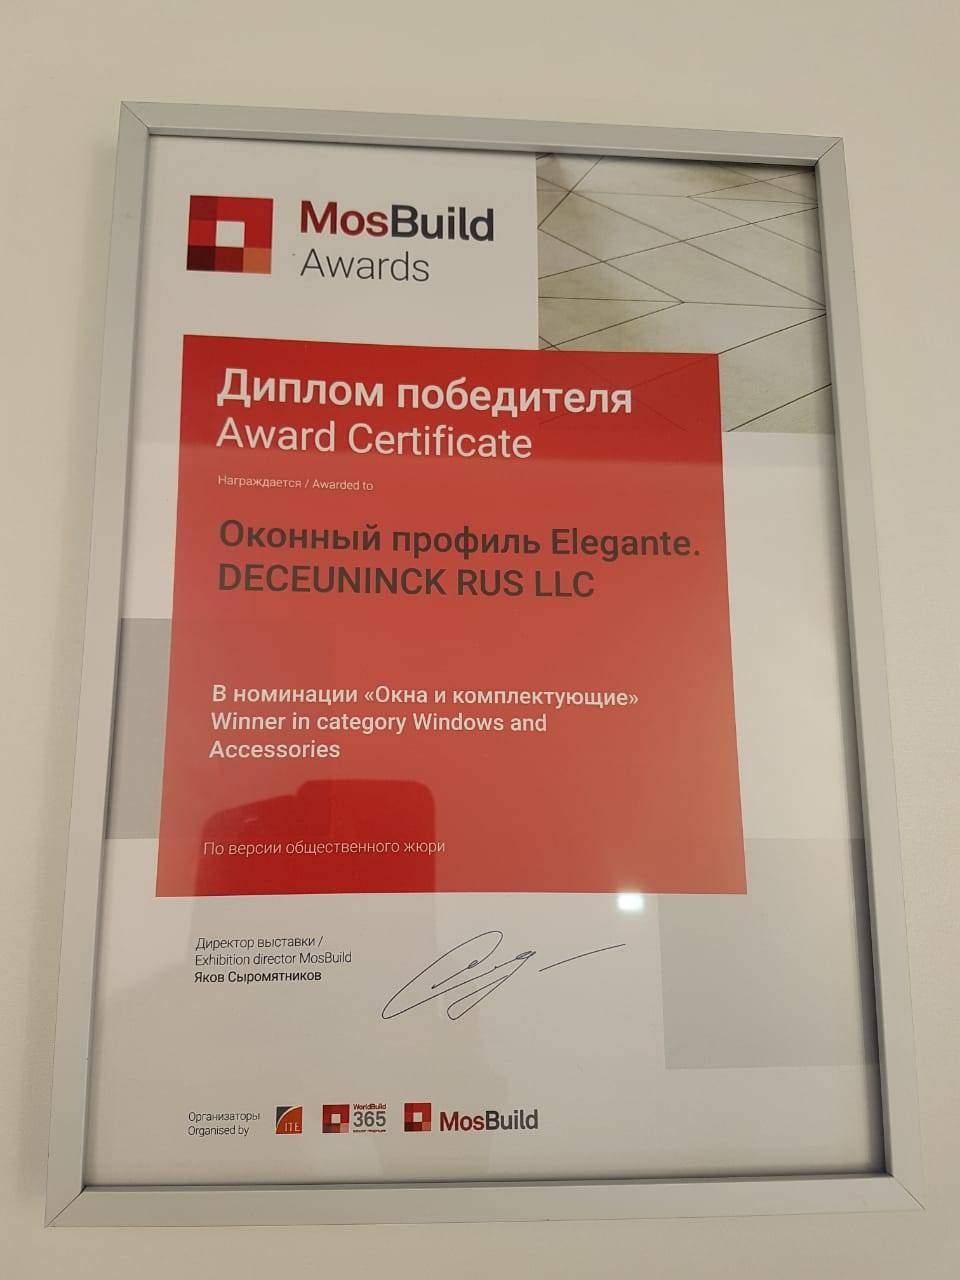 Оконная система Elegante от Deceuninck получила премию MosBuild Awards